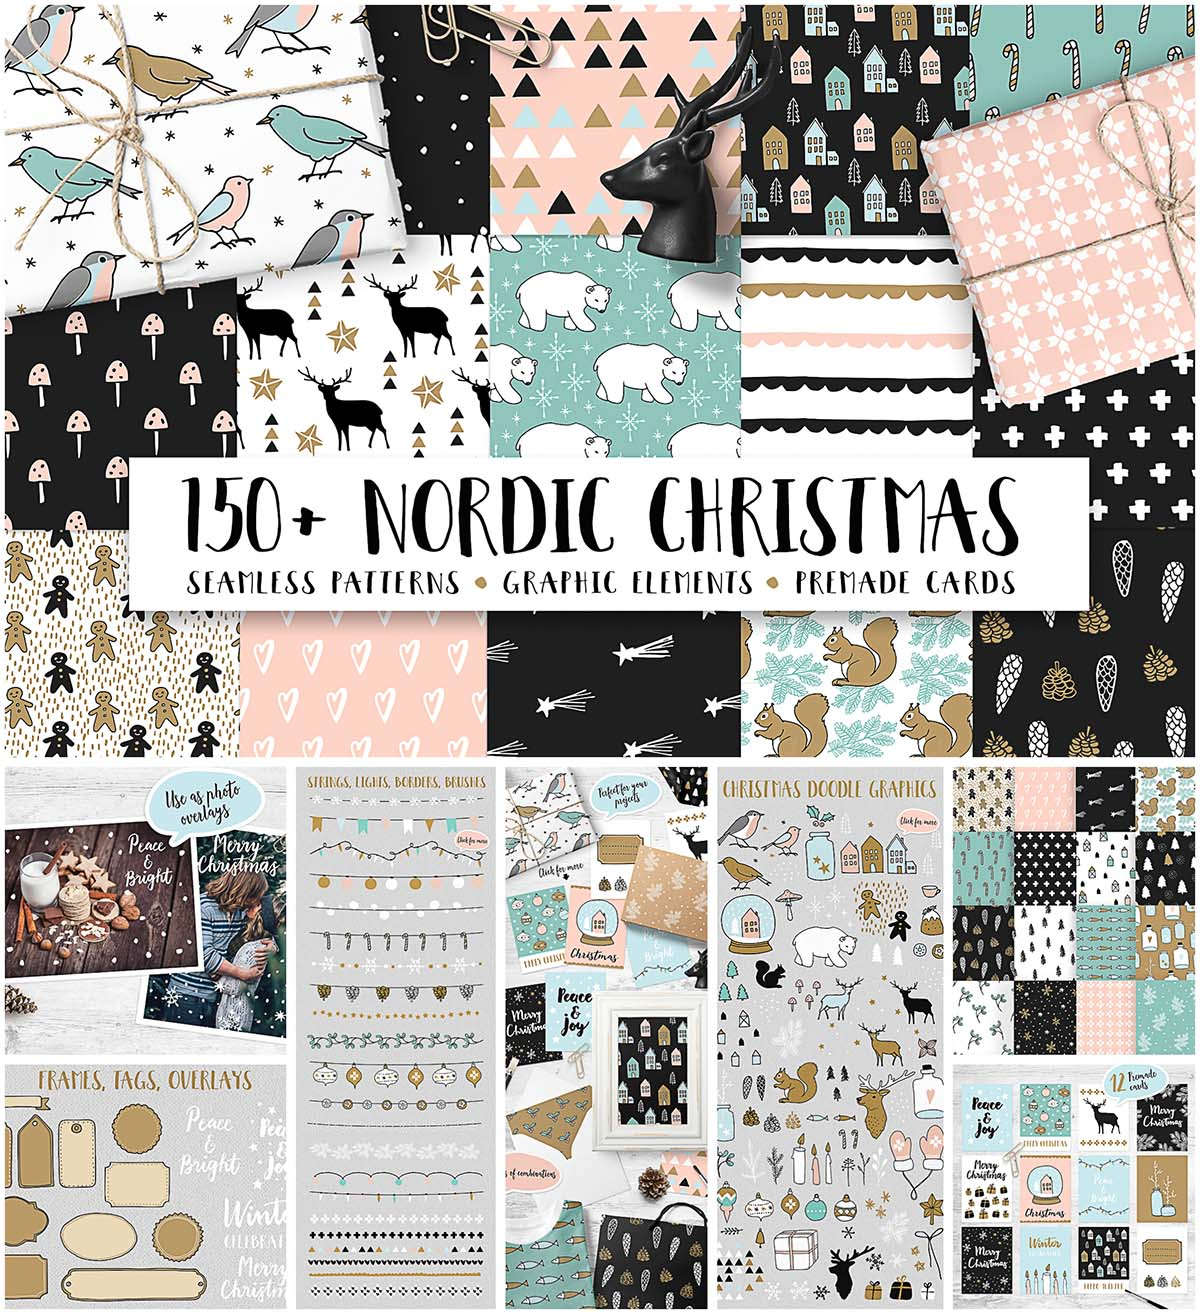 Nordic Christmas seamless patterns and elements